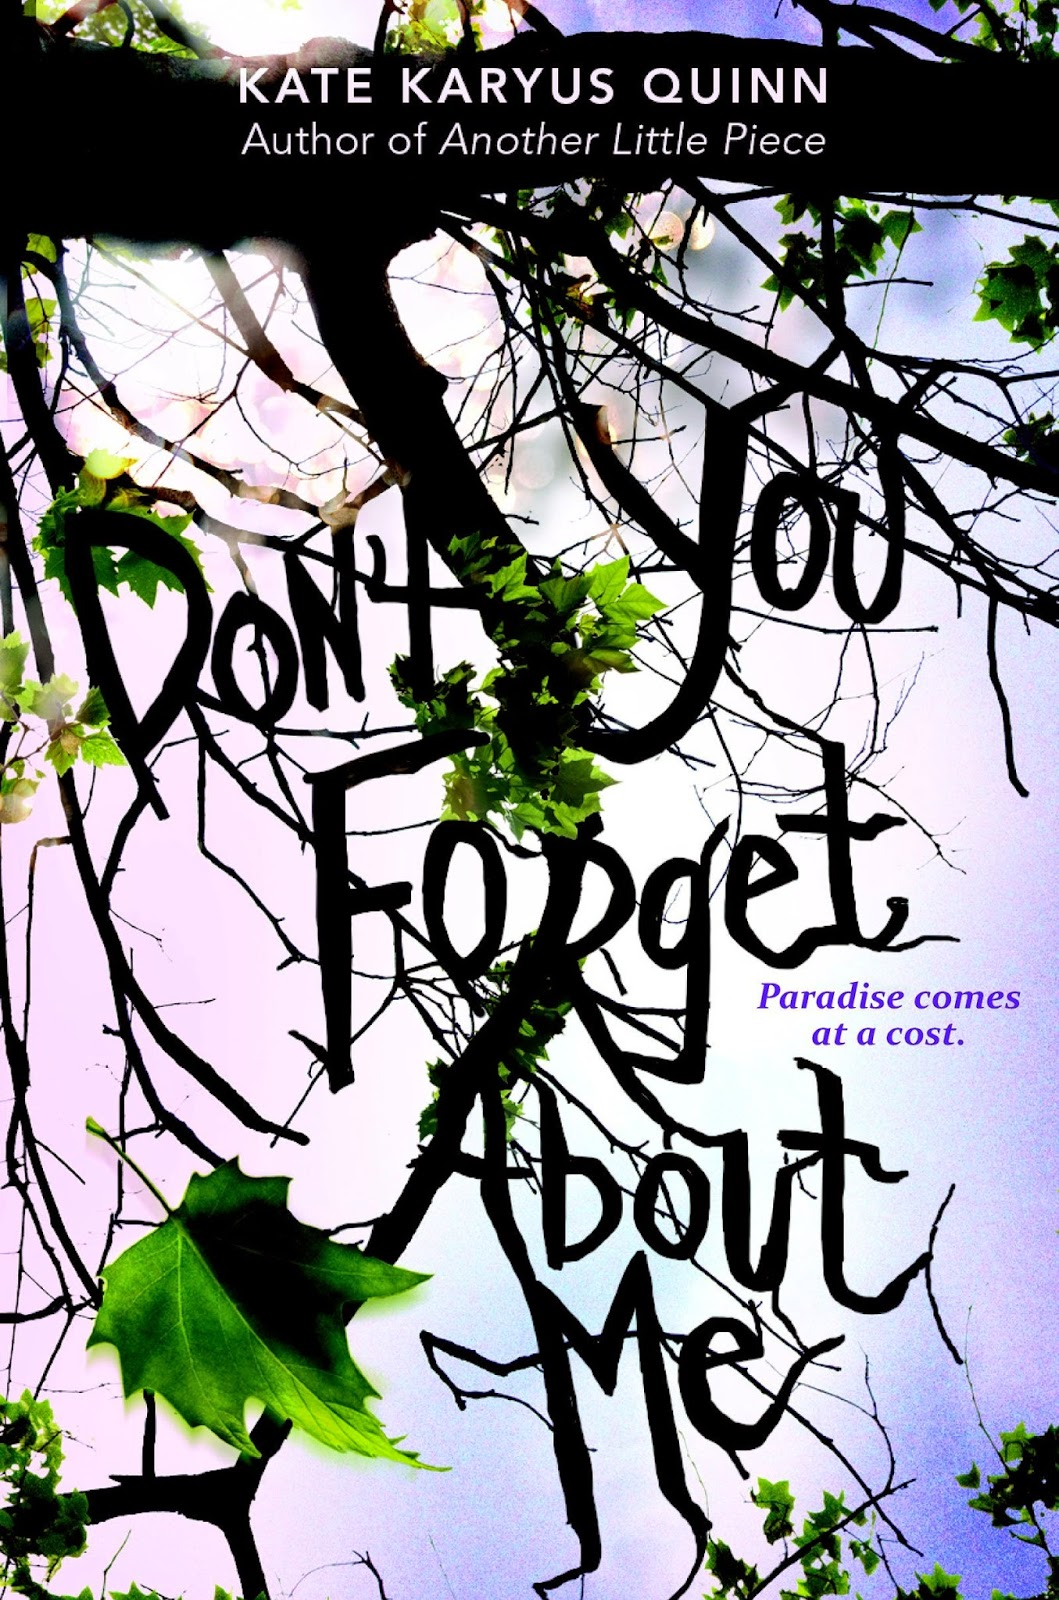 https://www.goodreads.com/book/show/18820442-don-t-you-forget-about-me